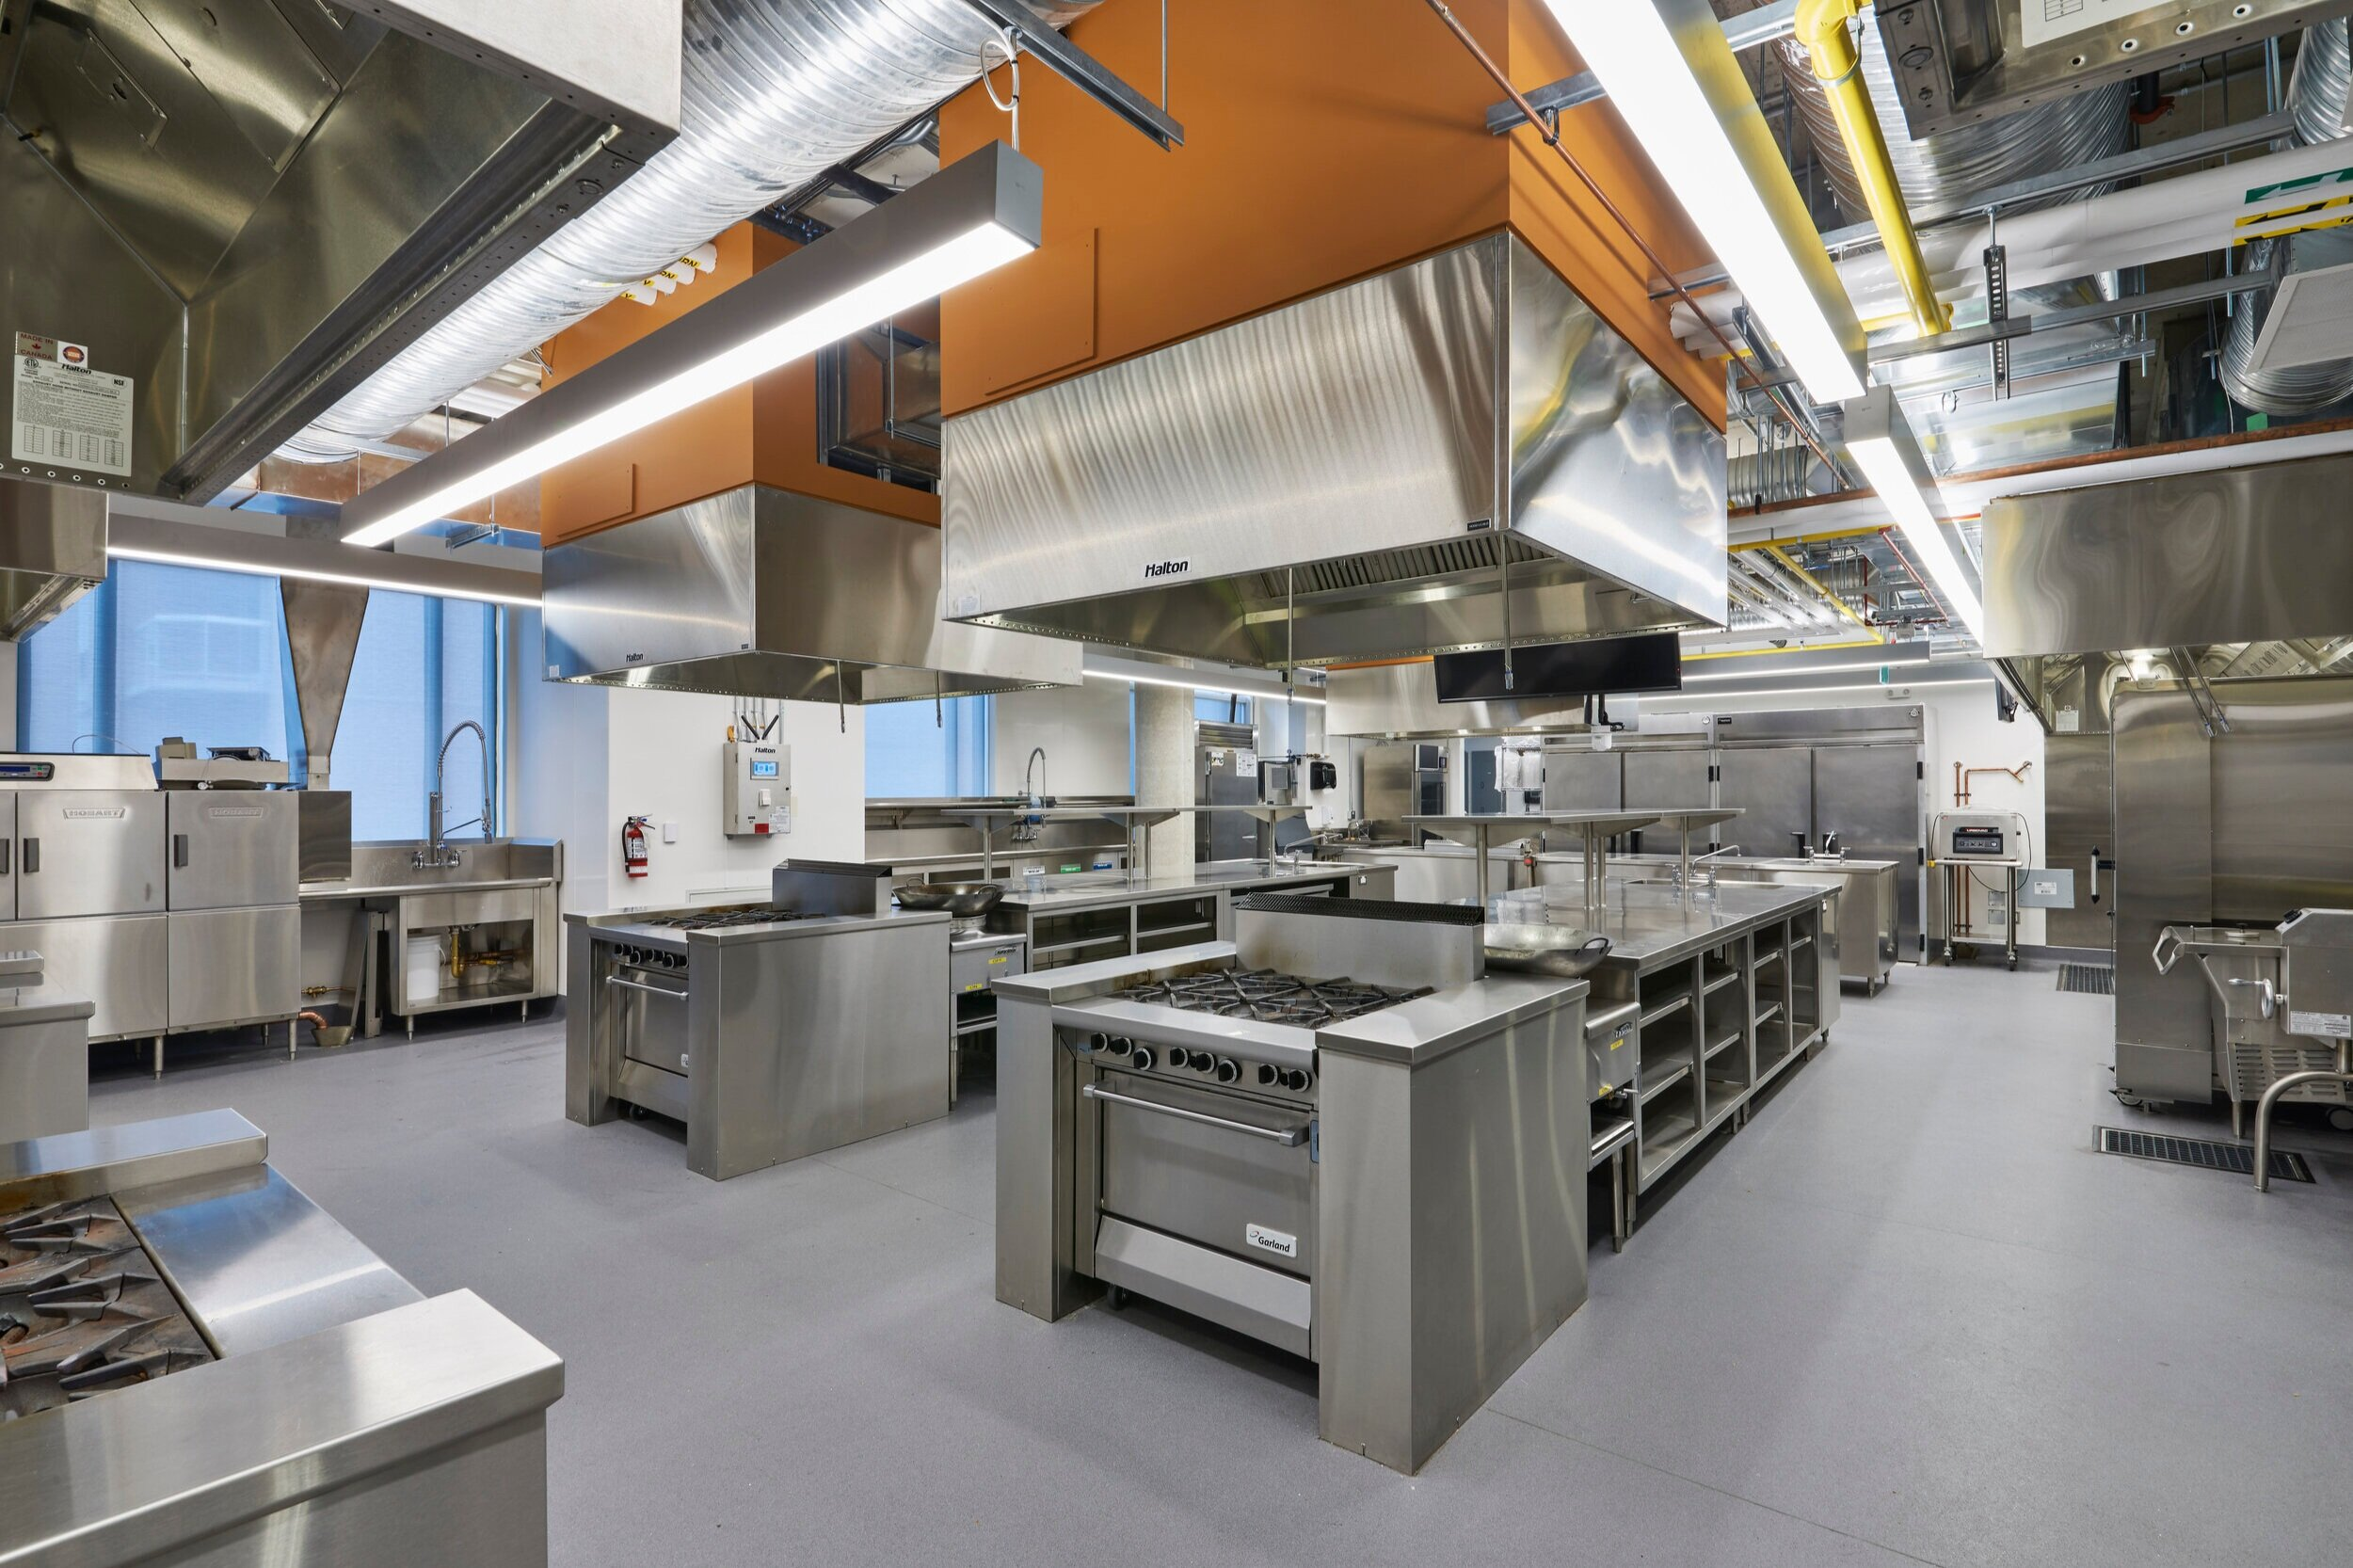 Third alternate view of a Culinary Kitchen Lab at the Centre for Hospitality & Culinary Arts at George Brown College